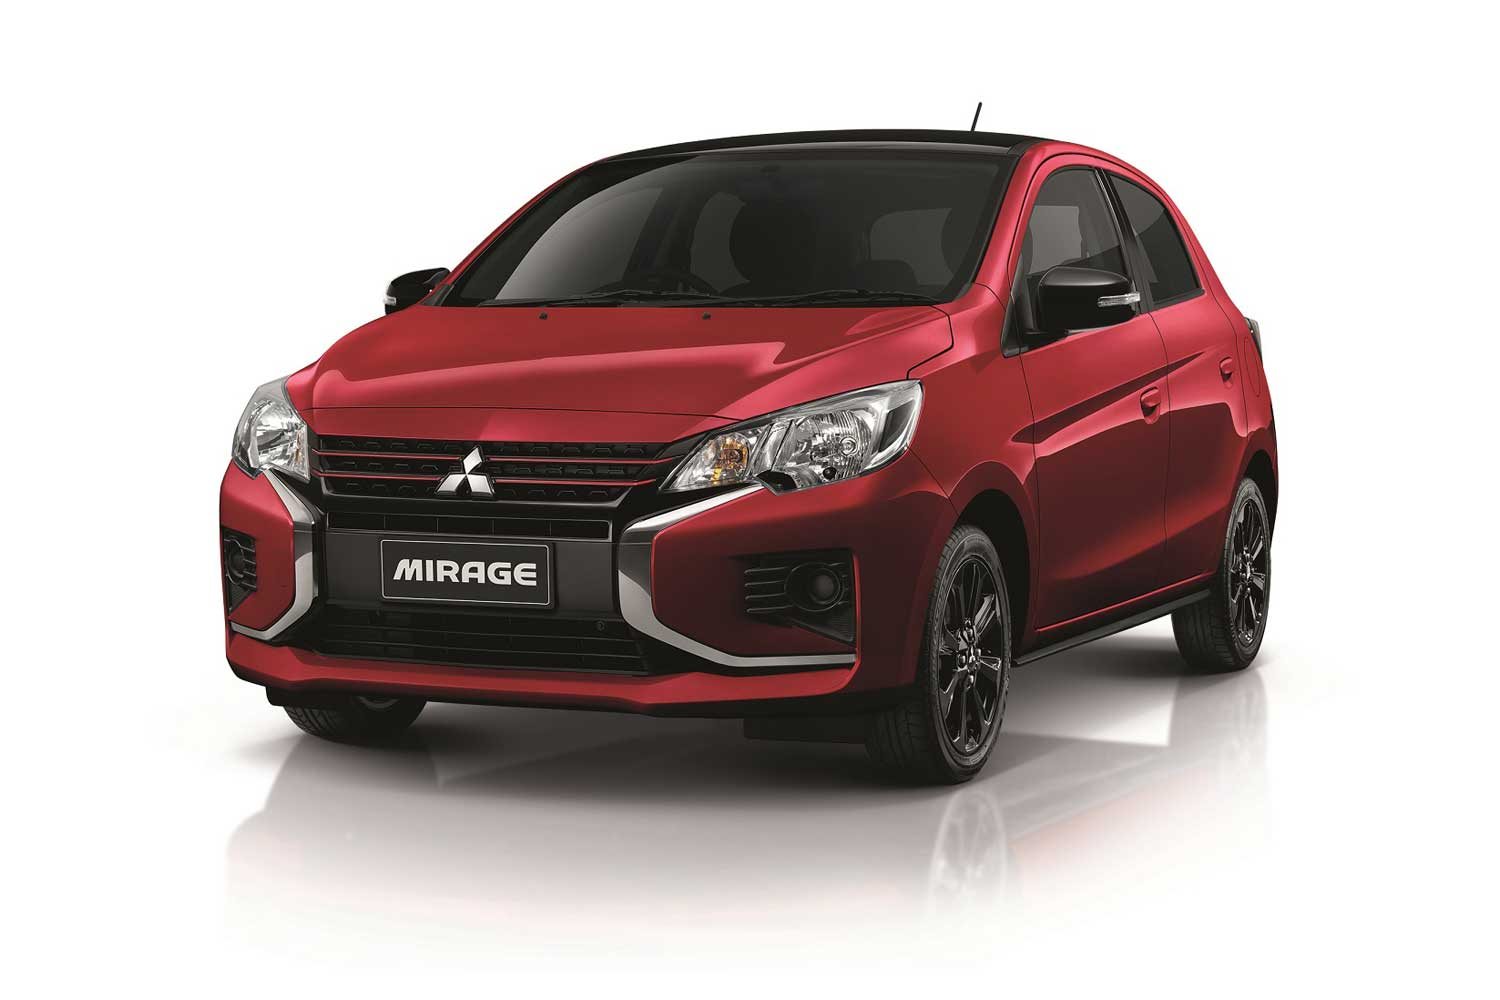 Five reasons why Mitsubishi Attrage and Mirage are the perfect choices for new normal life